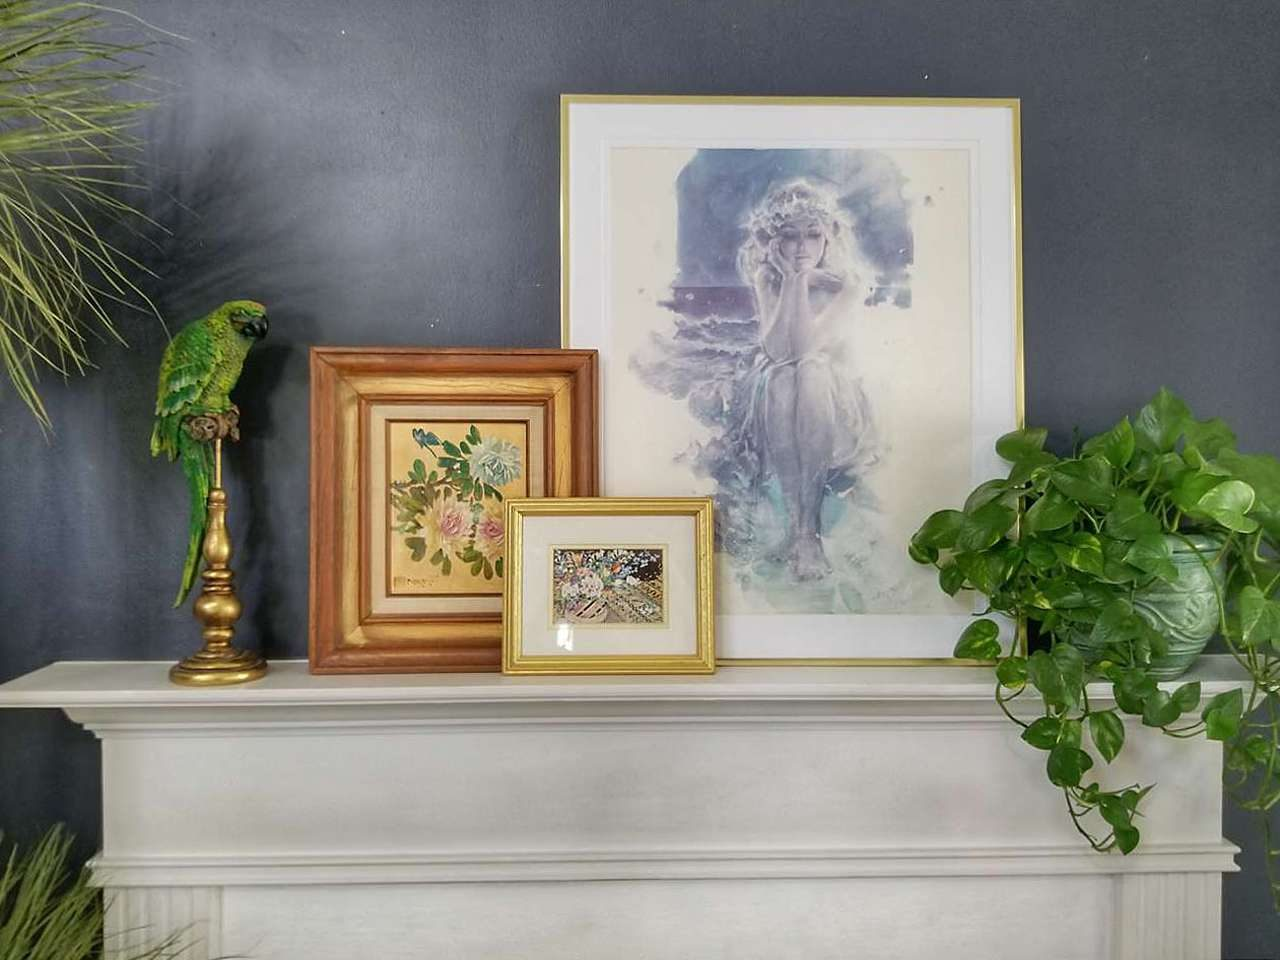 Triple picture frames on fireplace